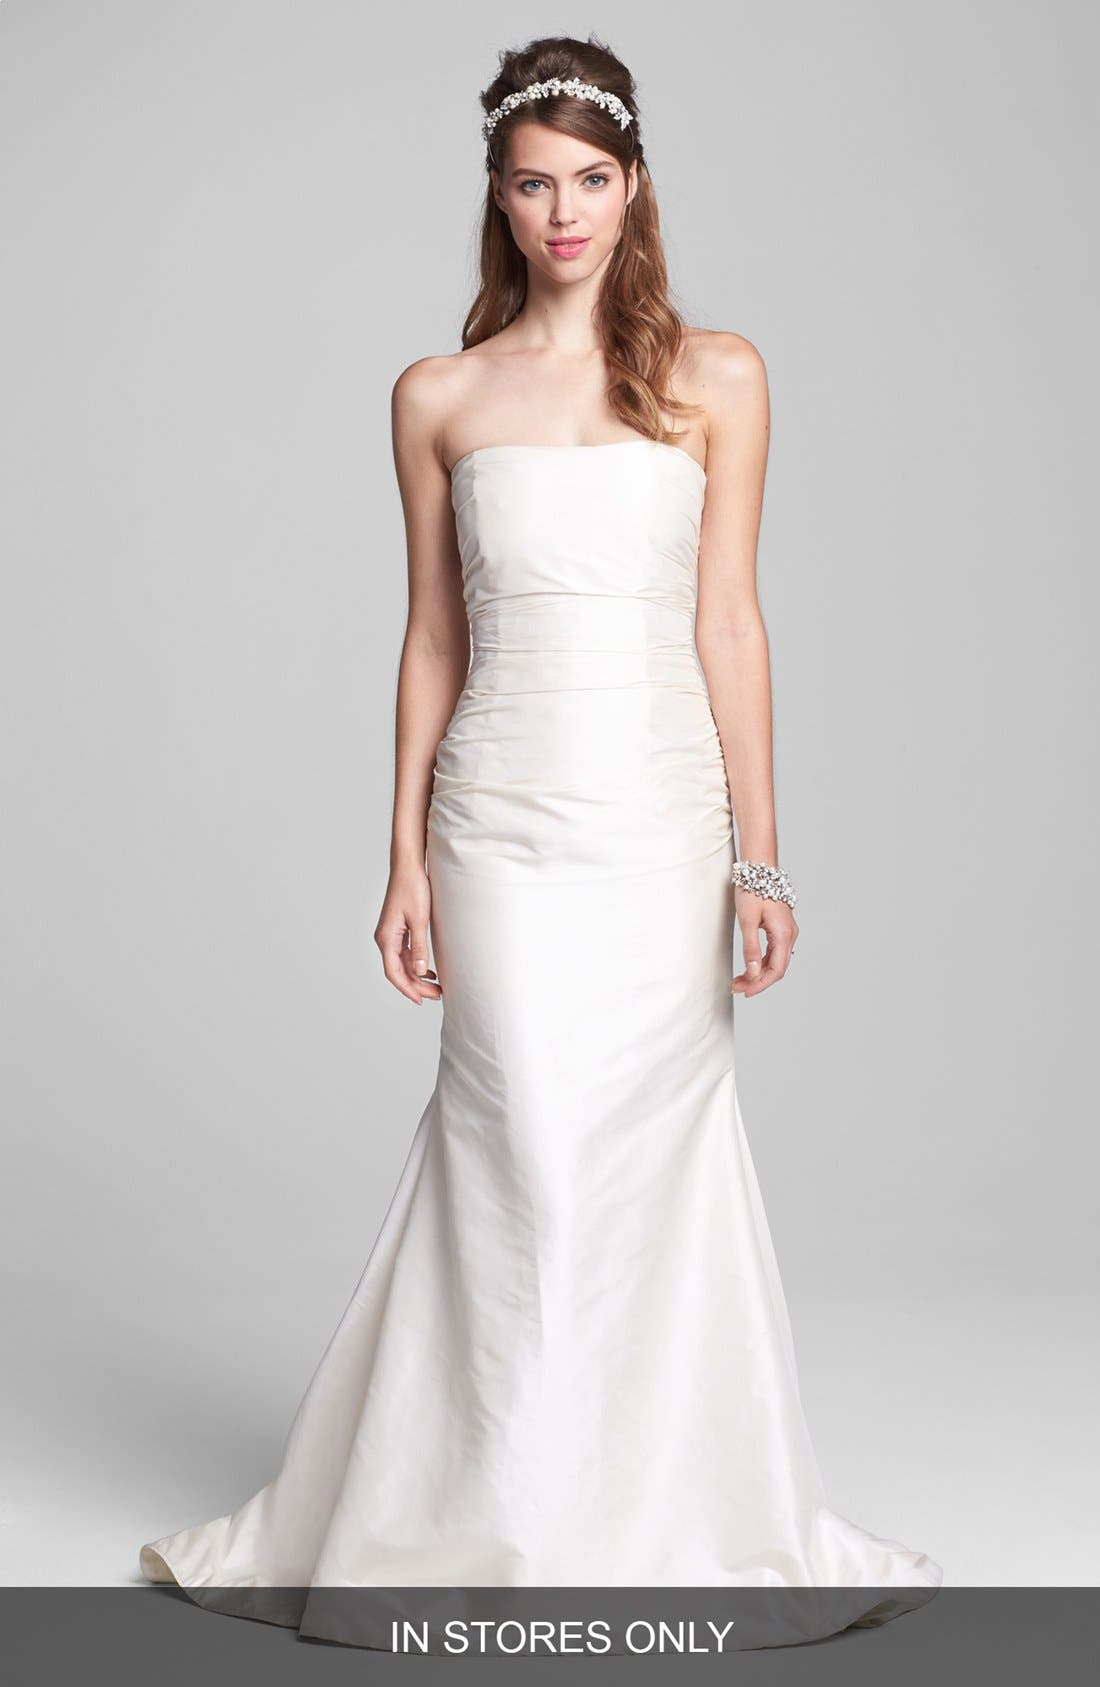 Main Image - Caroline DeVillo 'Abigail' Silk Shantung Mermaid Gown (In Stores Only)